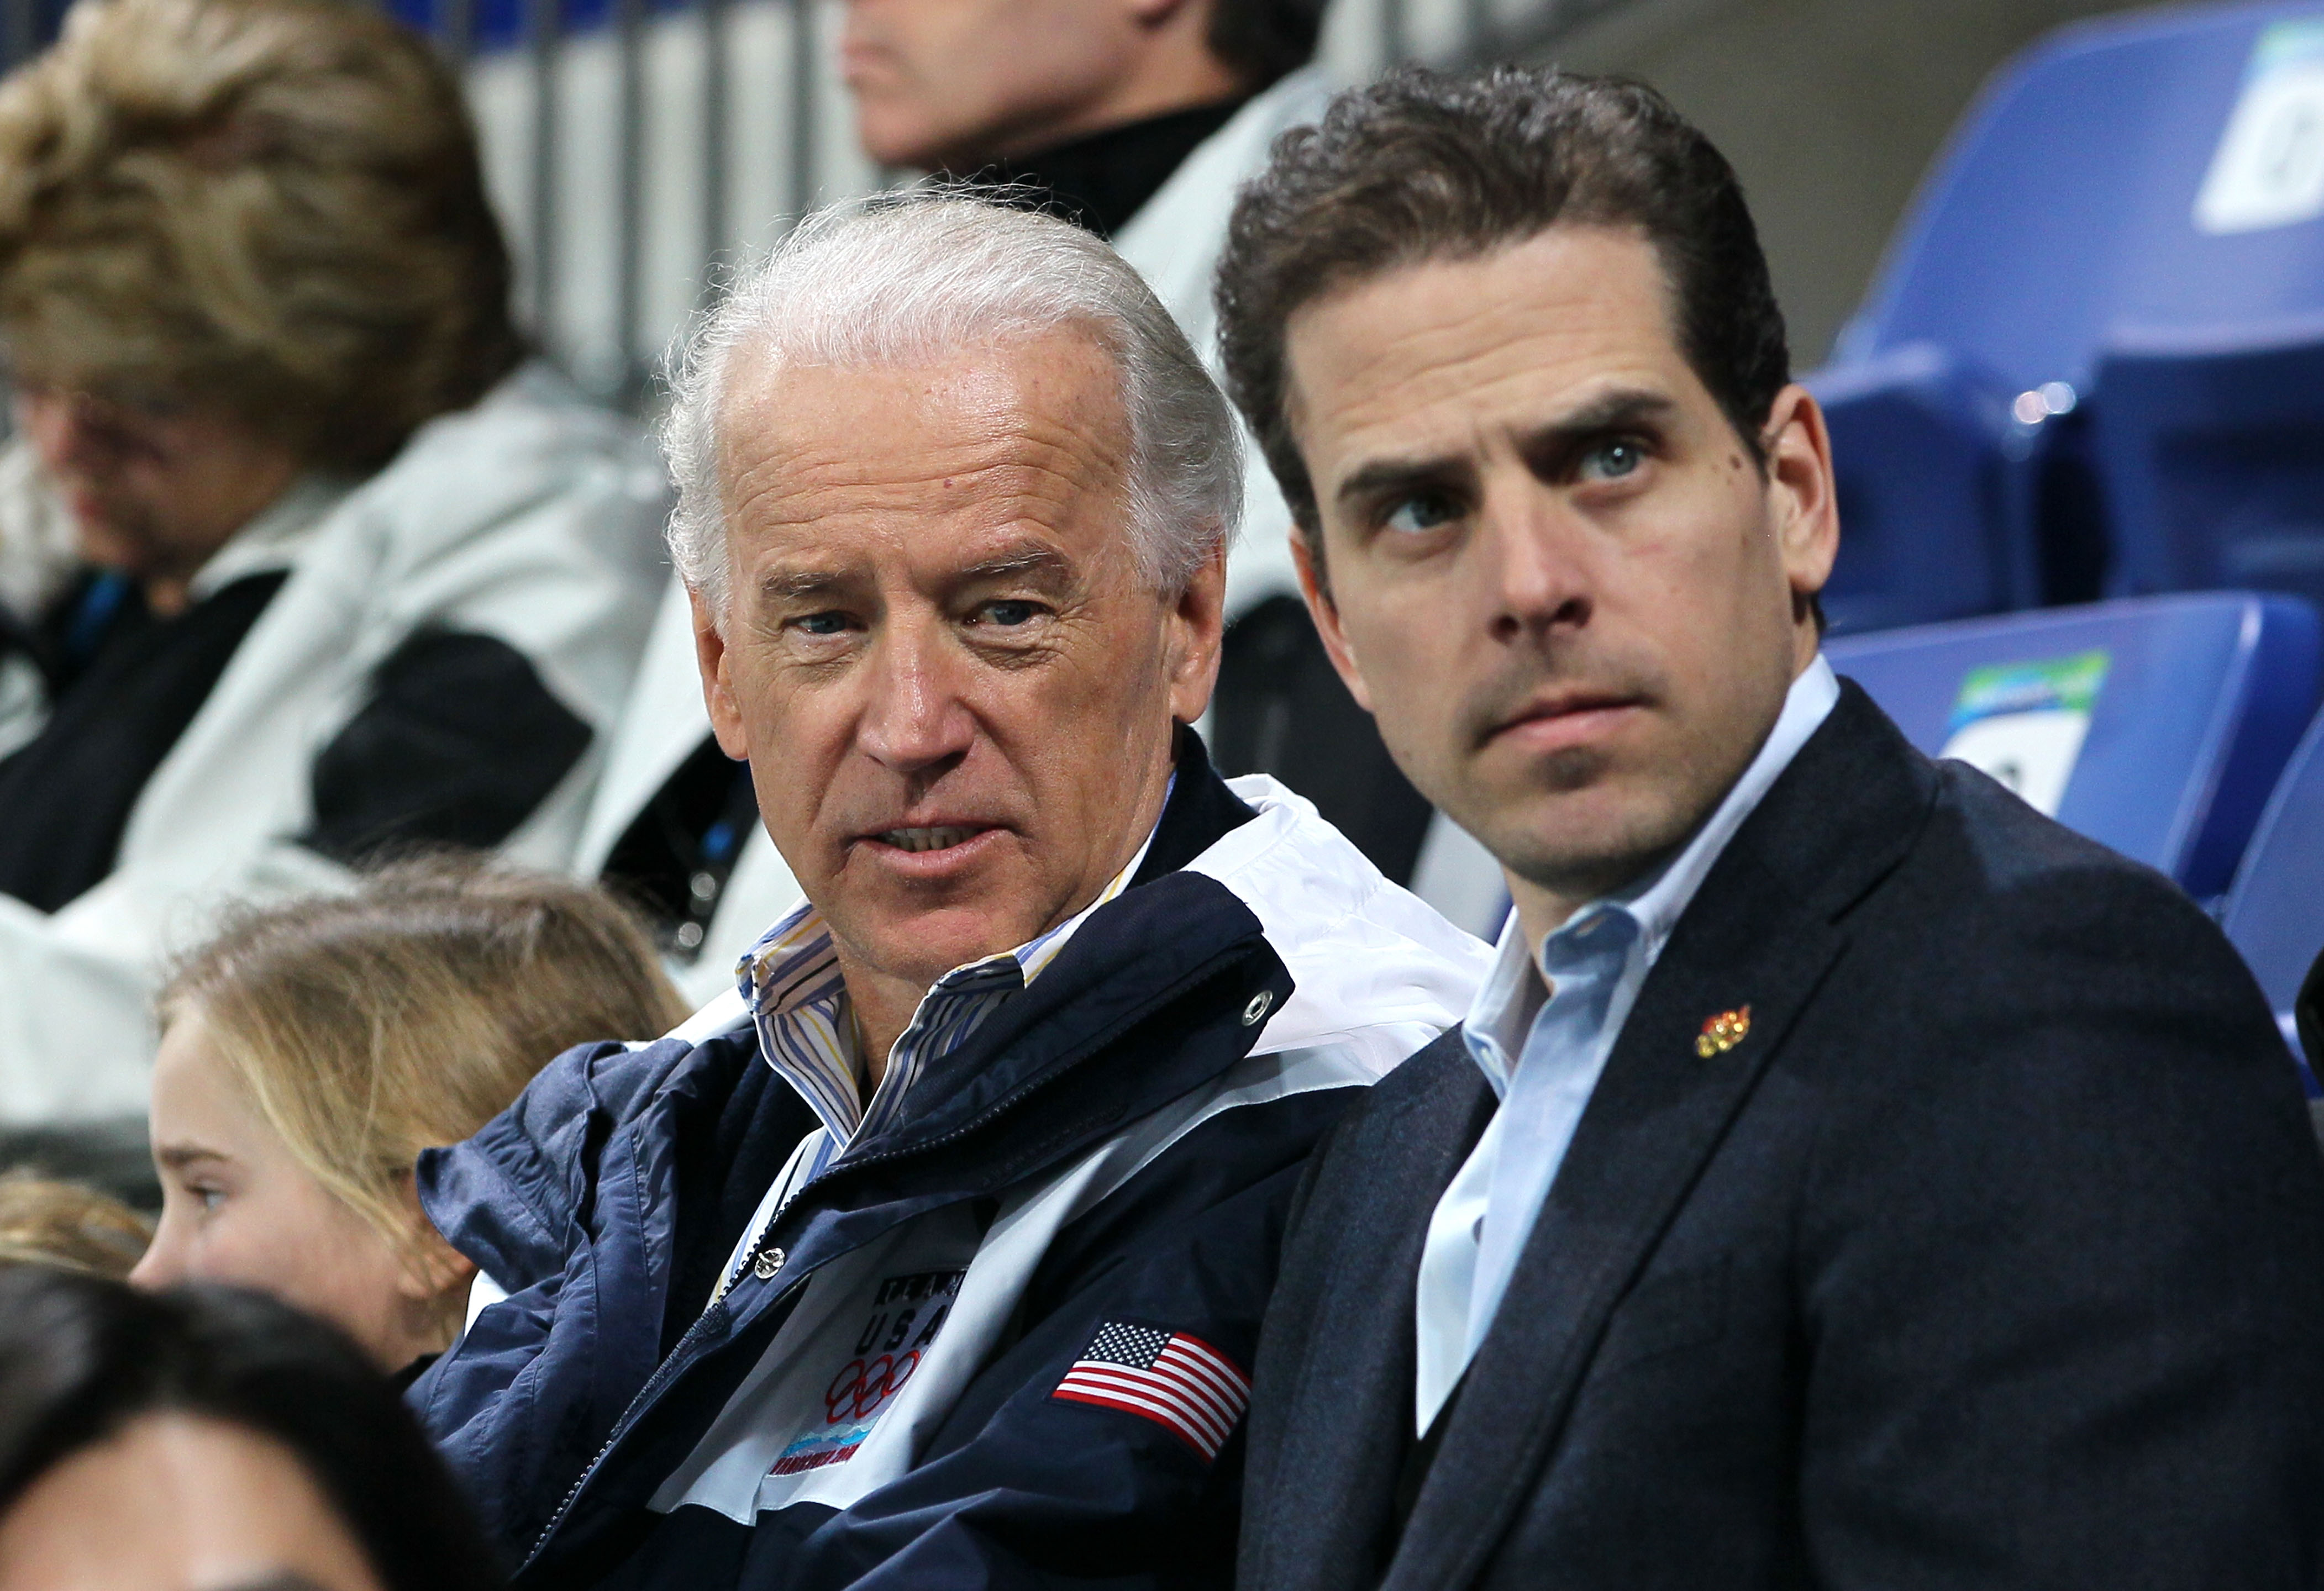 Newly Released Texts Reveal Hunter Biden  Using N-Word Repeatedly